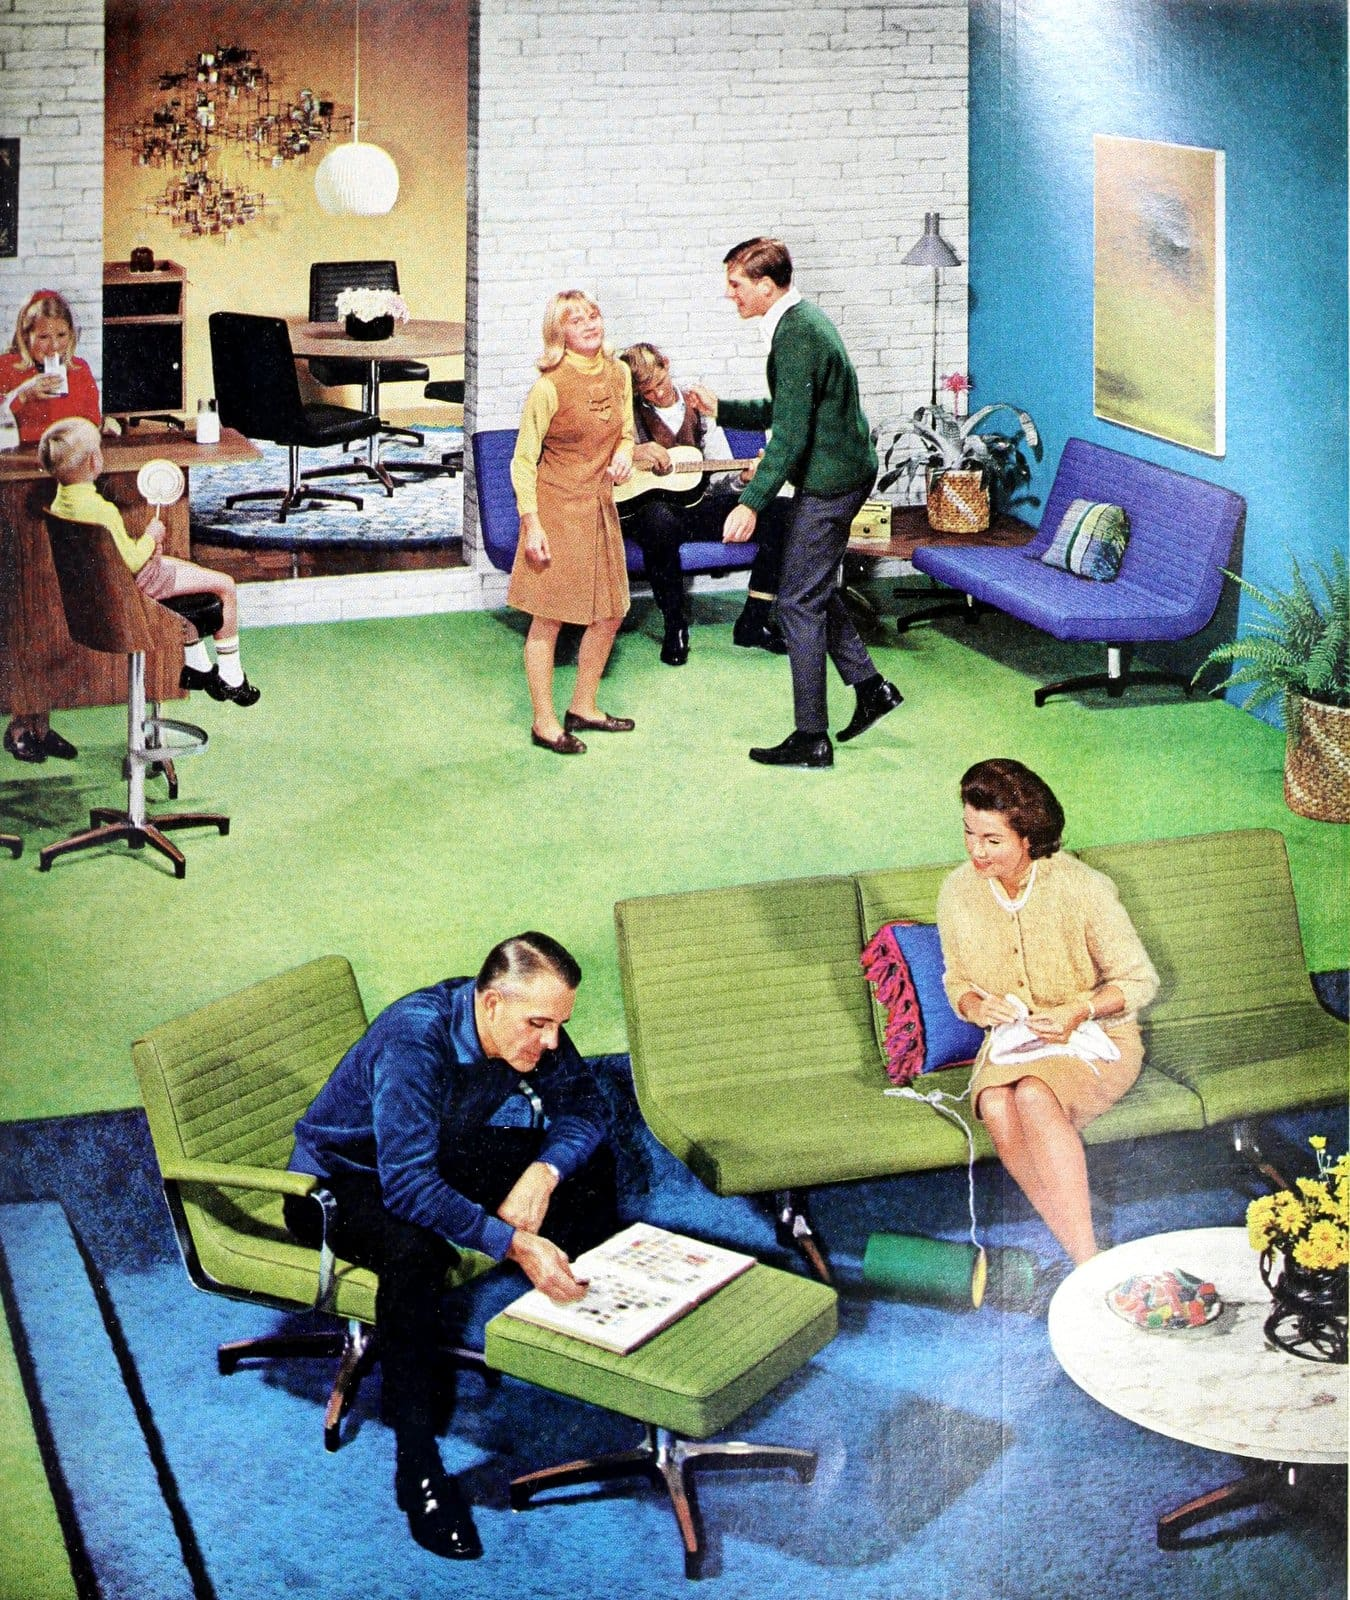 Midcentury modern furniture and flooring in a living-family room from 1966